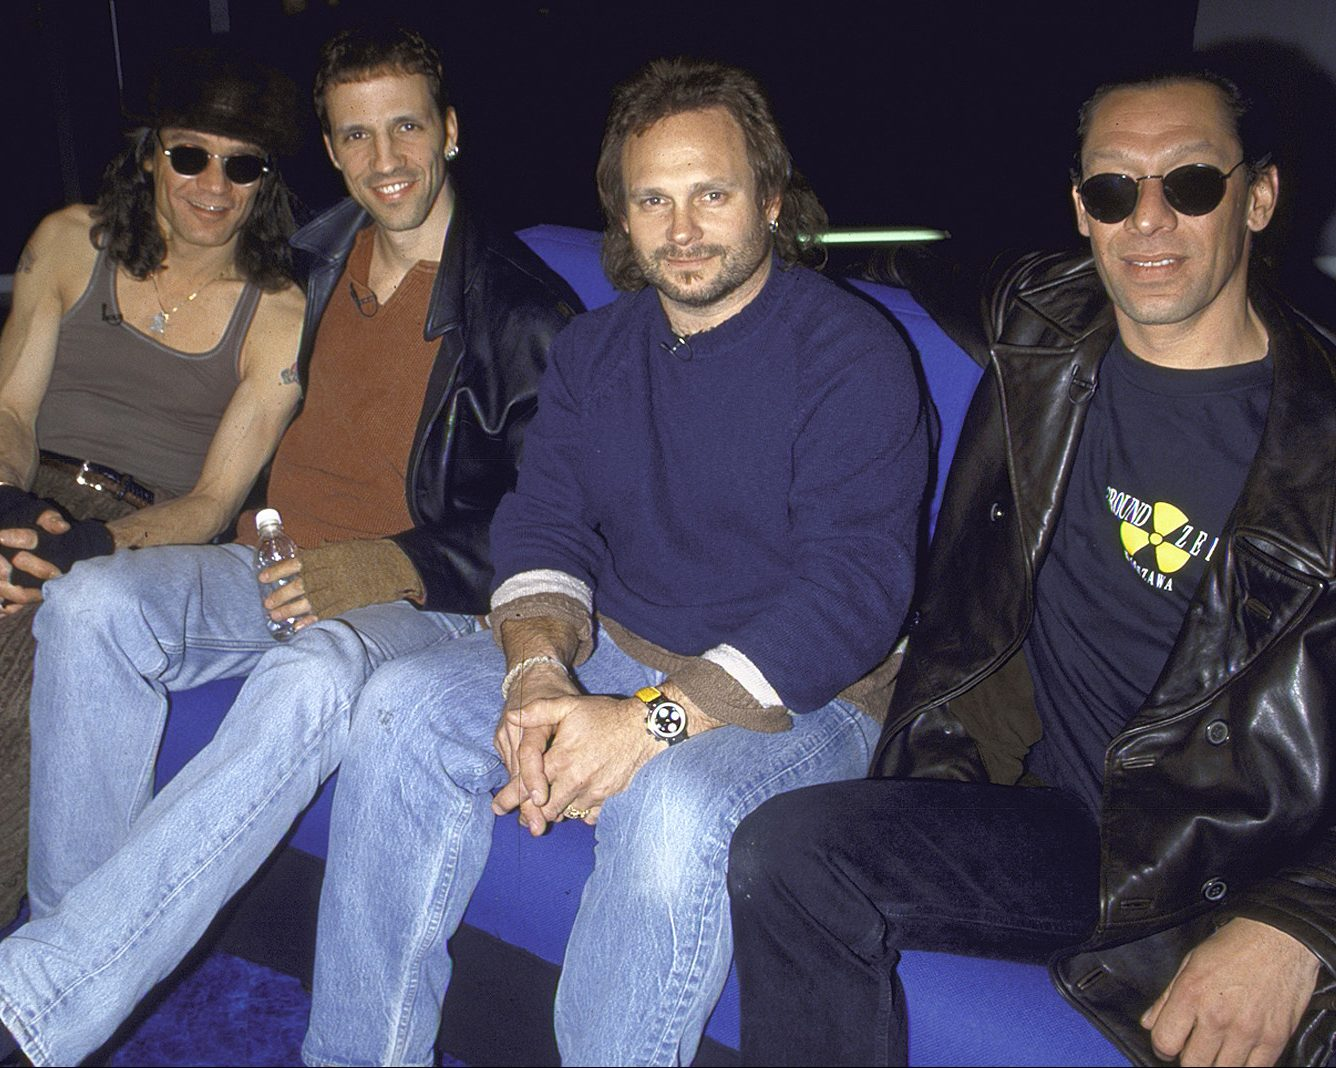 GettyImages 50379563 e1604914135828 20 Facts About Rock Legends Van Halen That Will Make You Jump